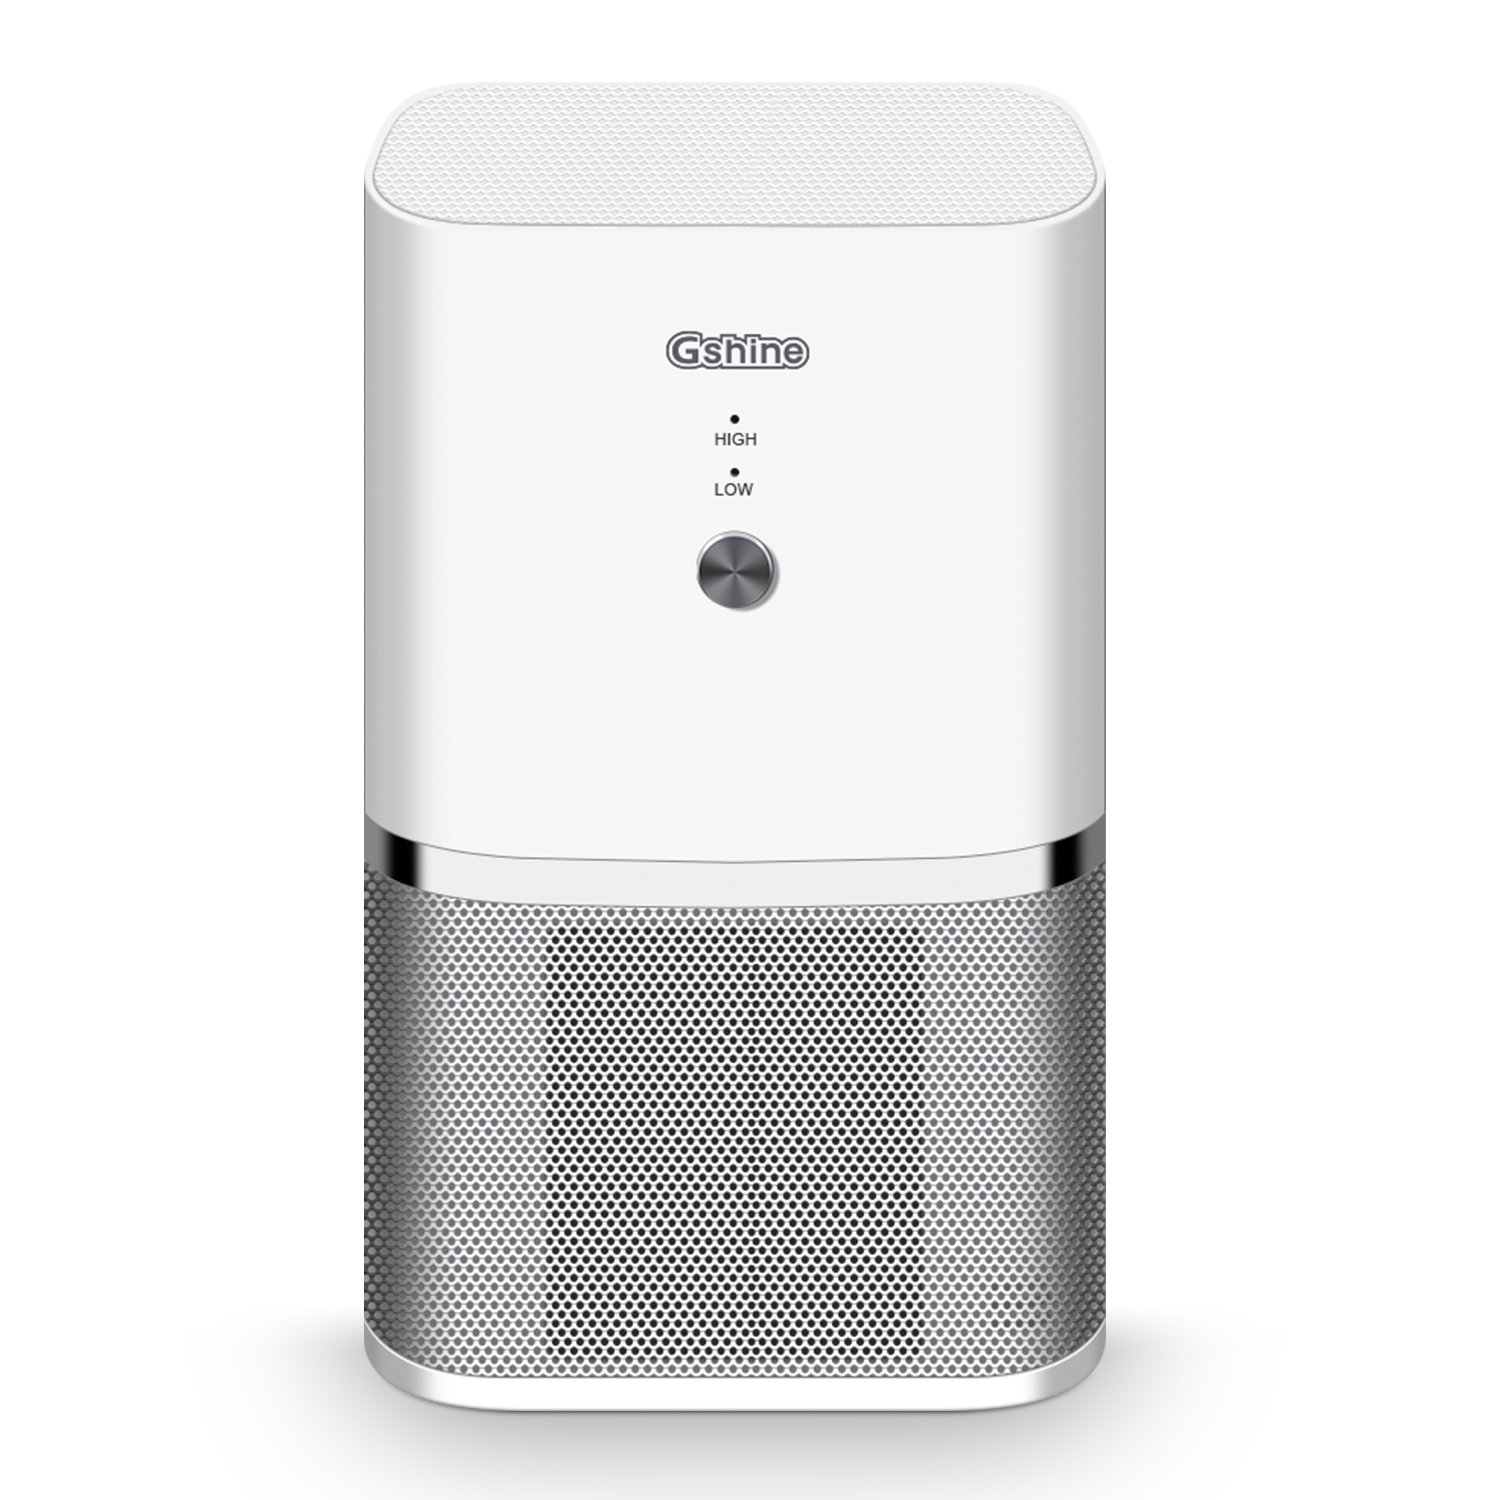 Gshine Air Purifier with HEPA Filter - Portable Quiet Mini Air Purifier Ionizer to Reduce Mold Odor Smoke for Desktop Small Room up to 50 Sq Ft - Travel Air Purifiers for Allergies (Air Purifier)